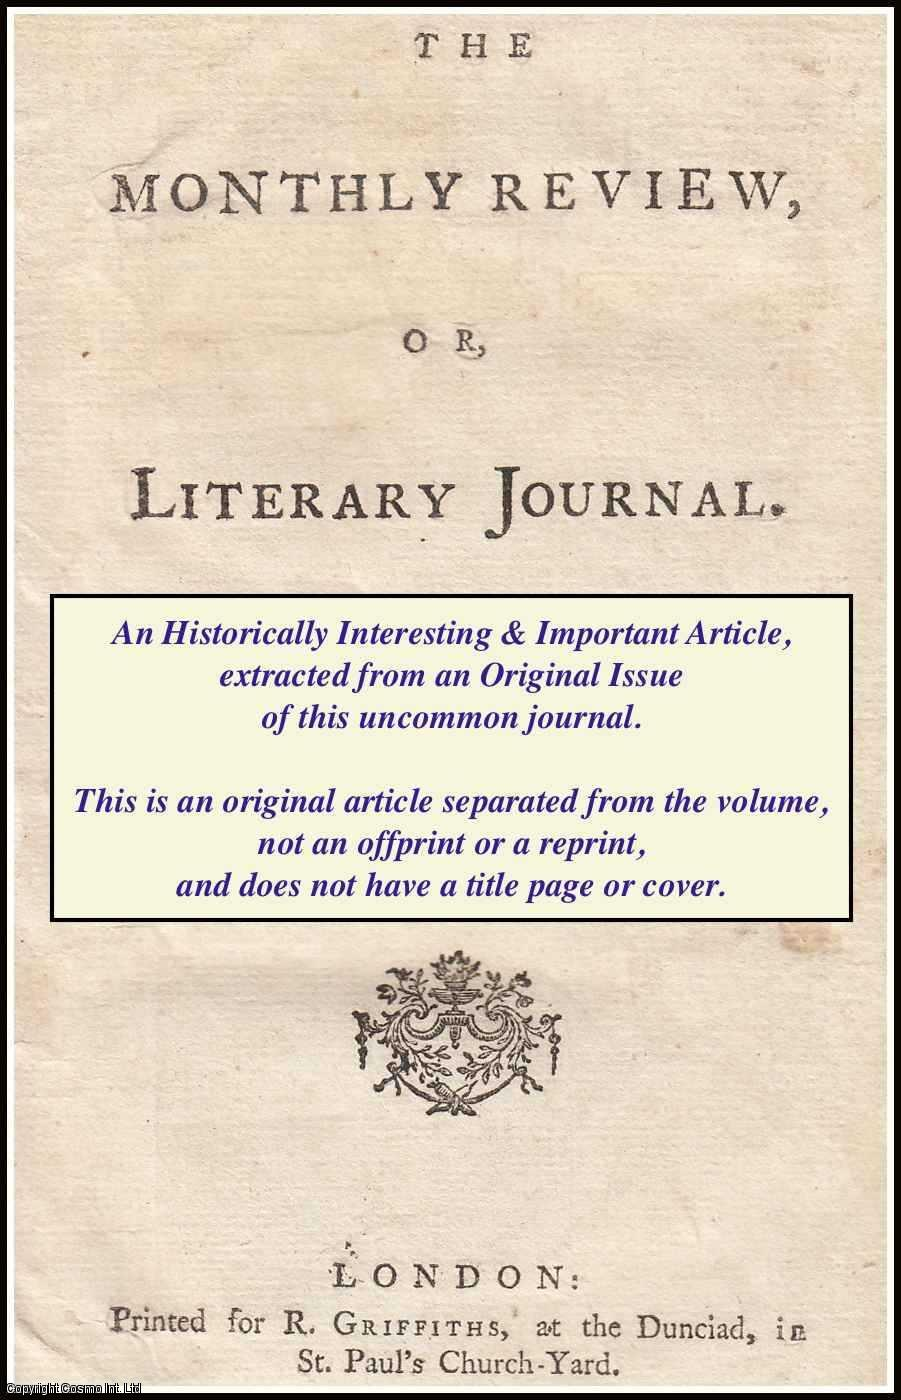 --- - The Henriade of Voltaire, Translated. Part II A rare original article from the Monthly Review, 1798.